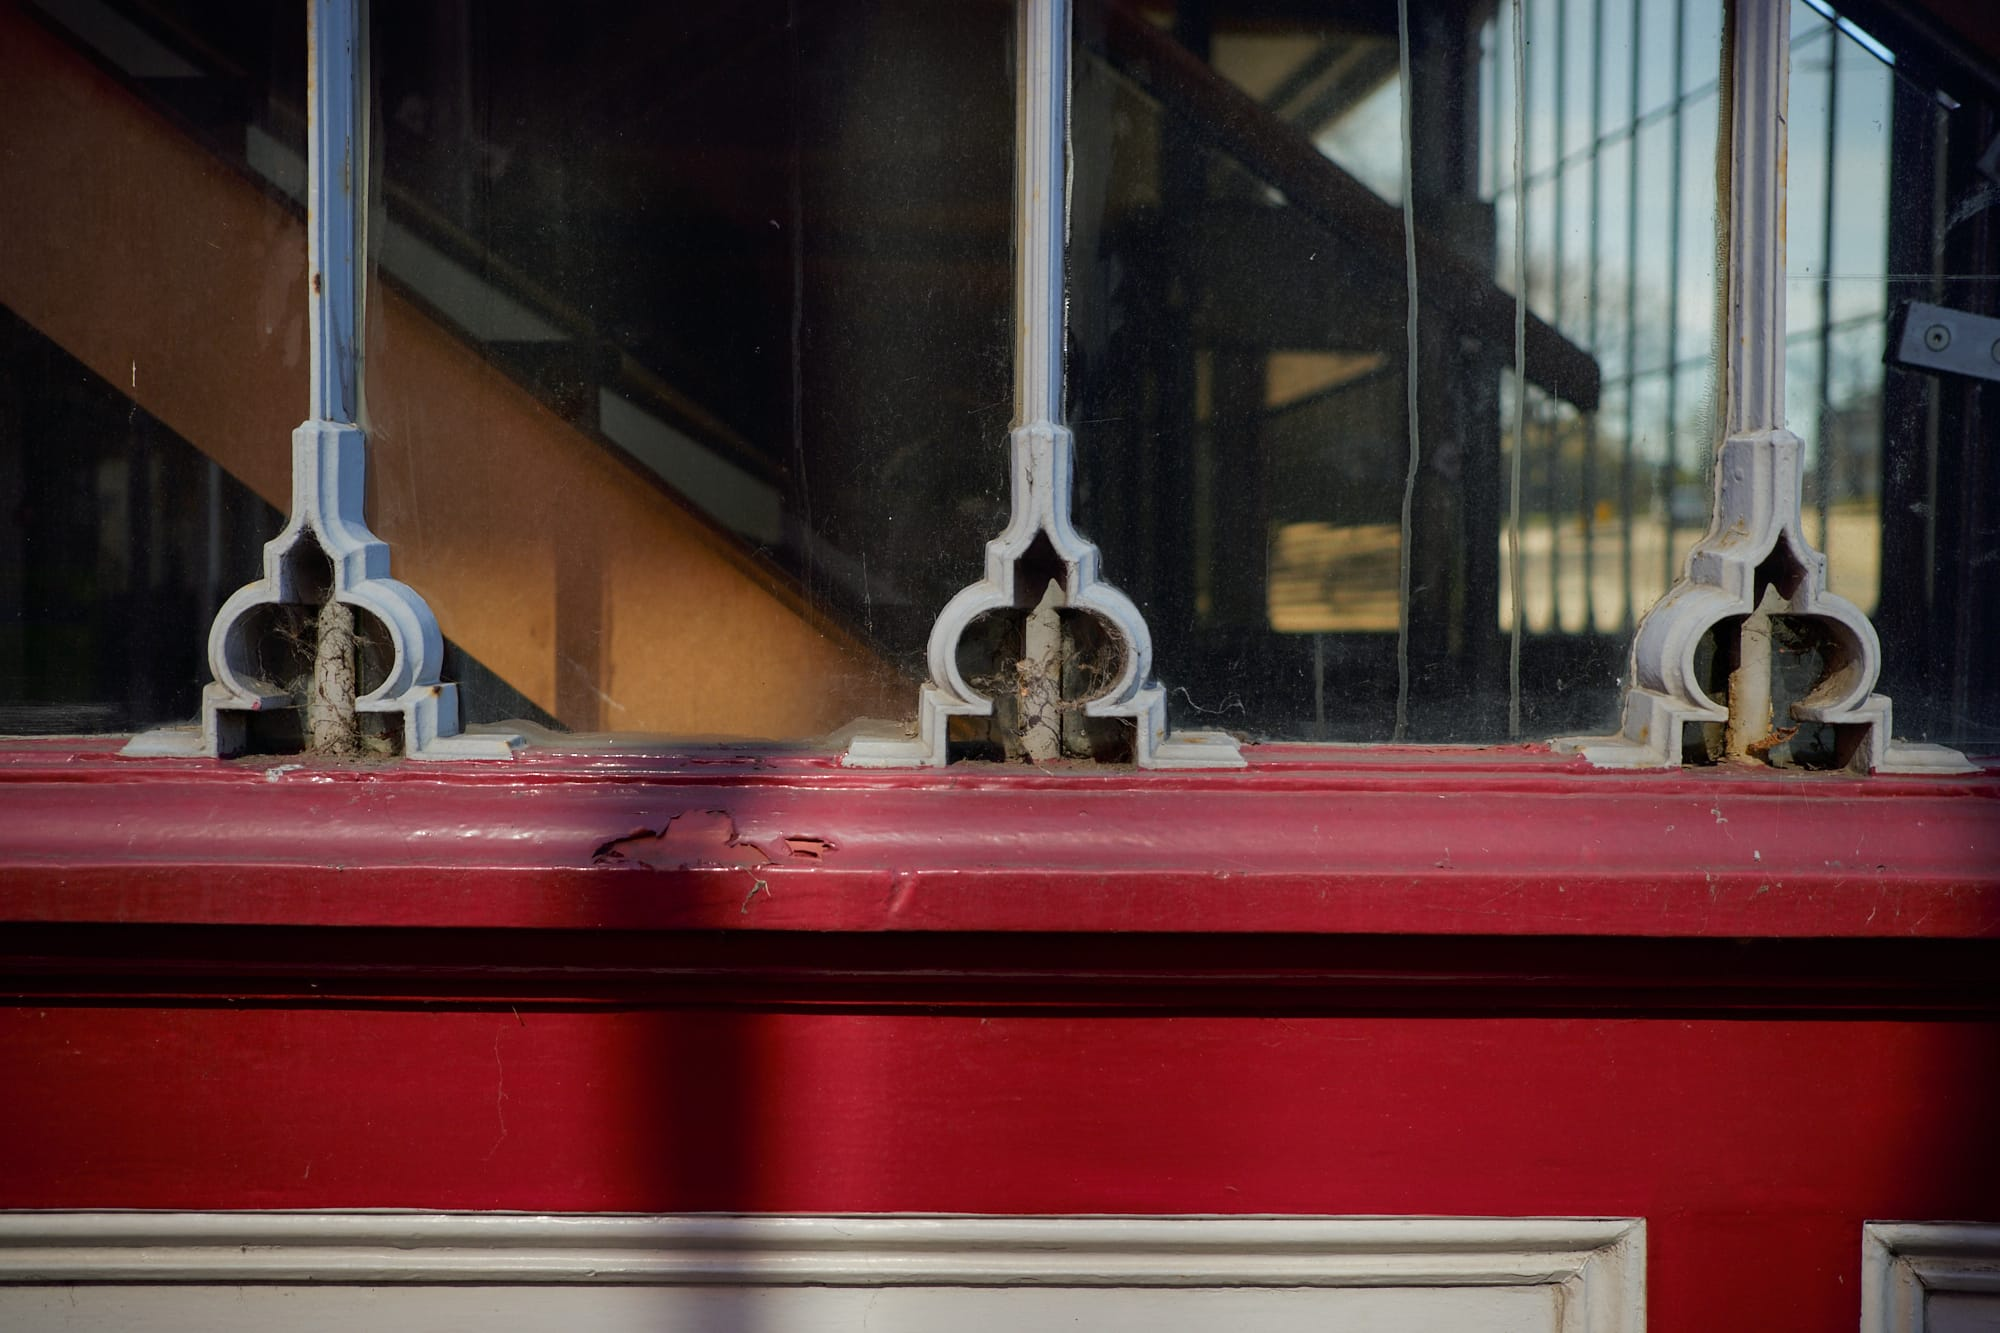 close view of pub window